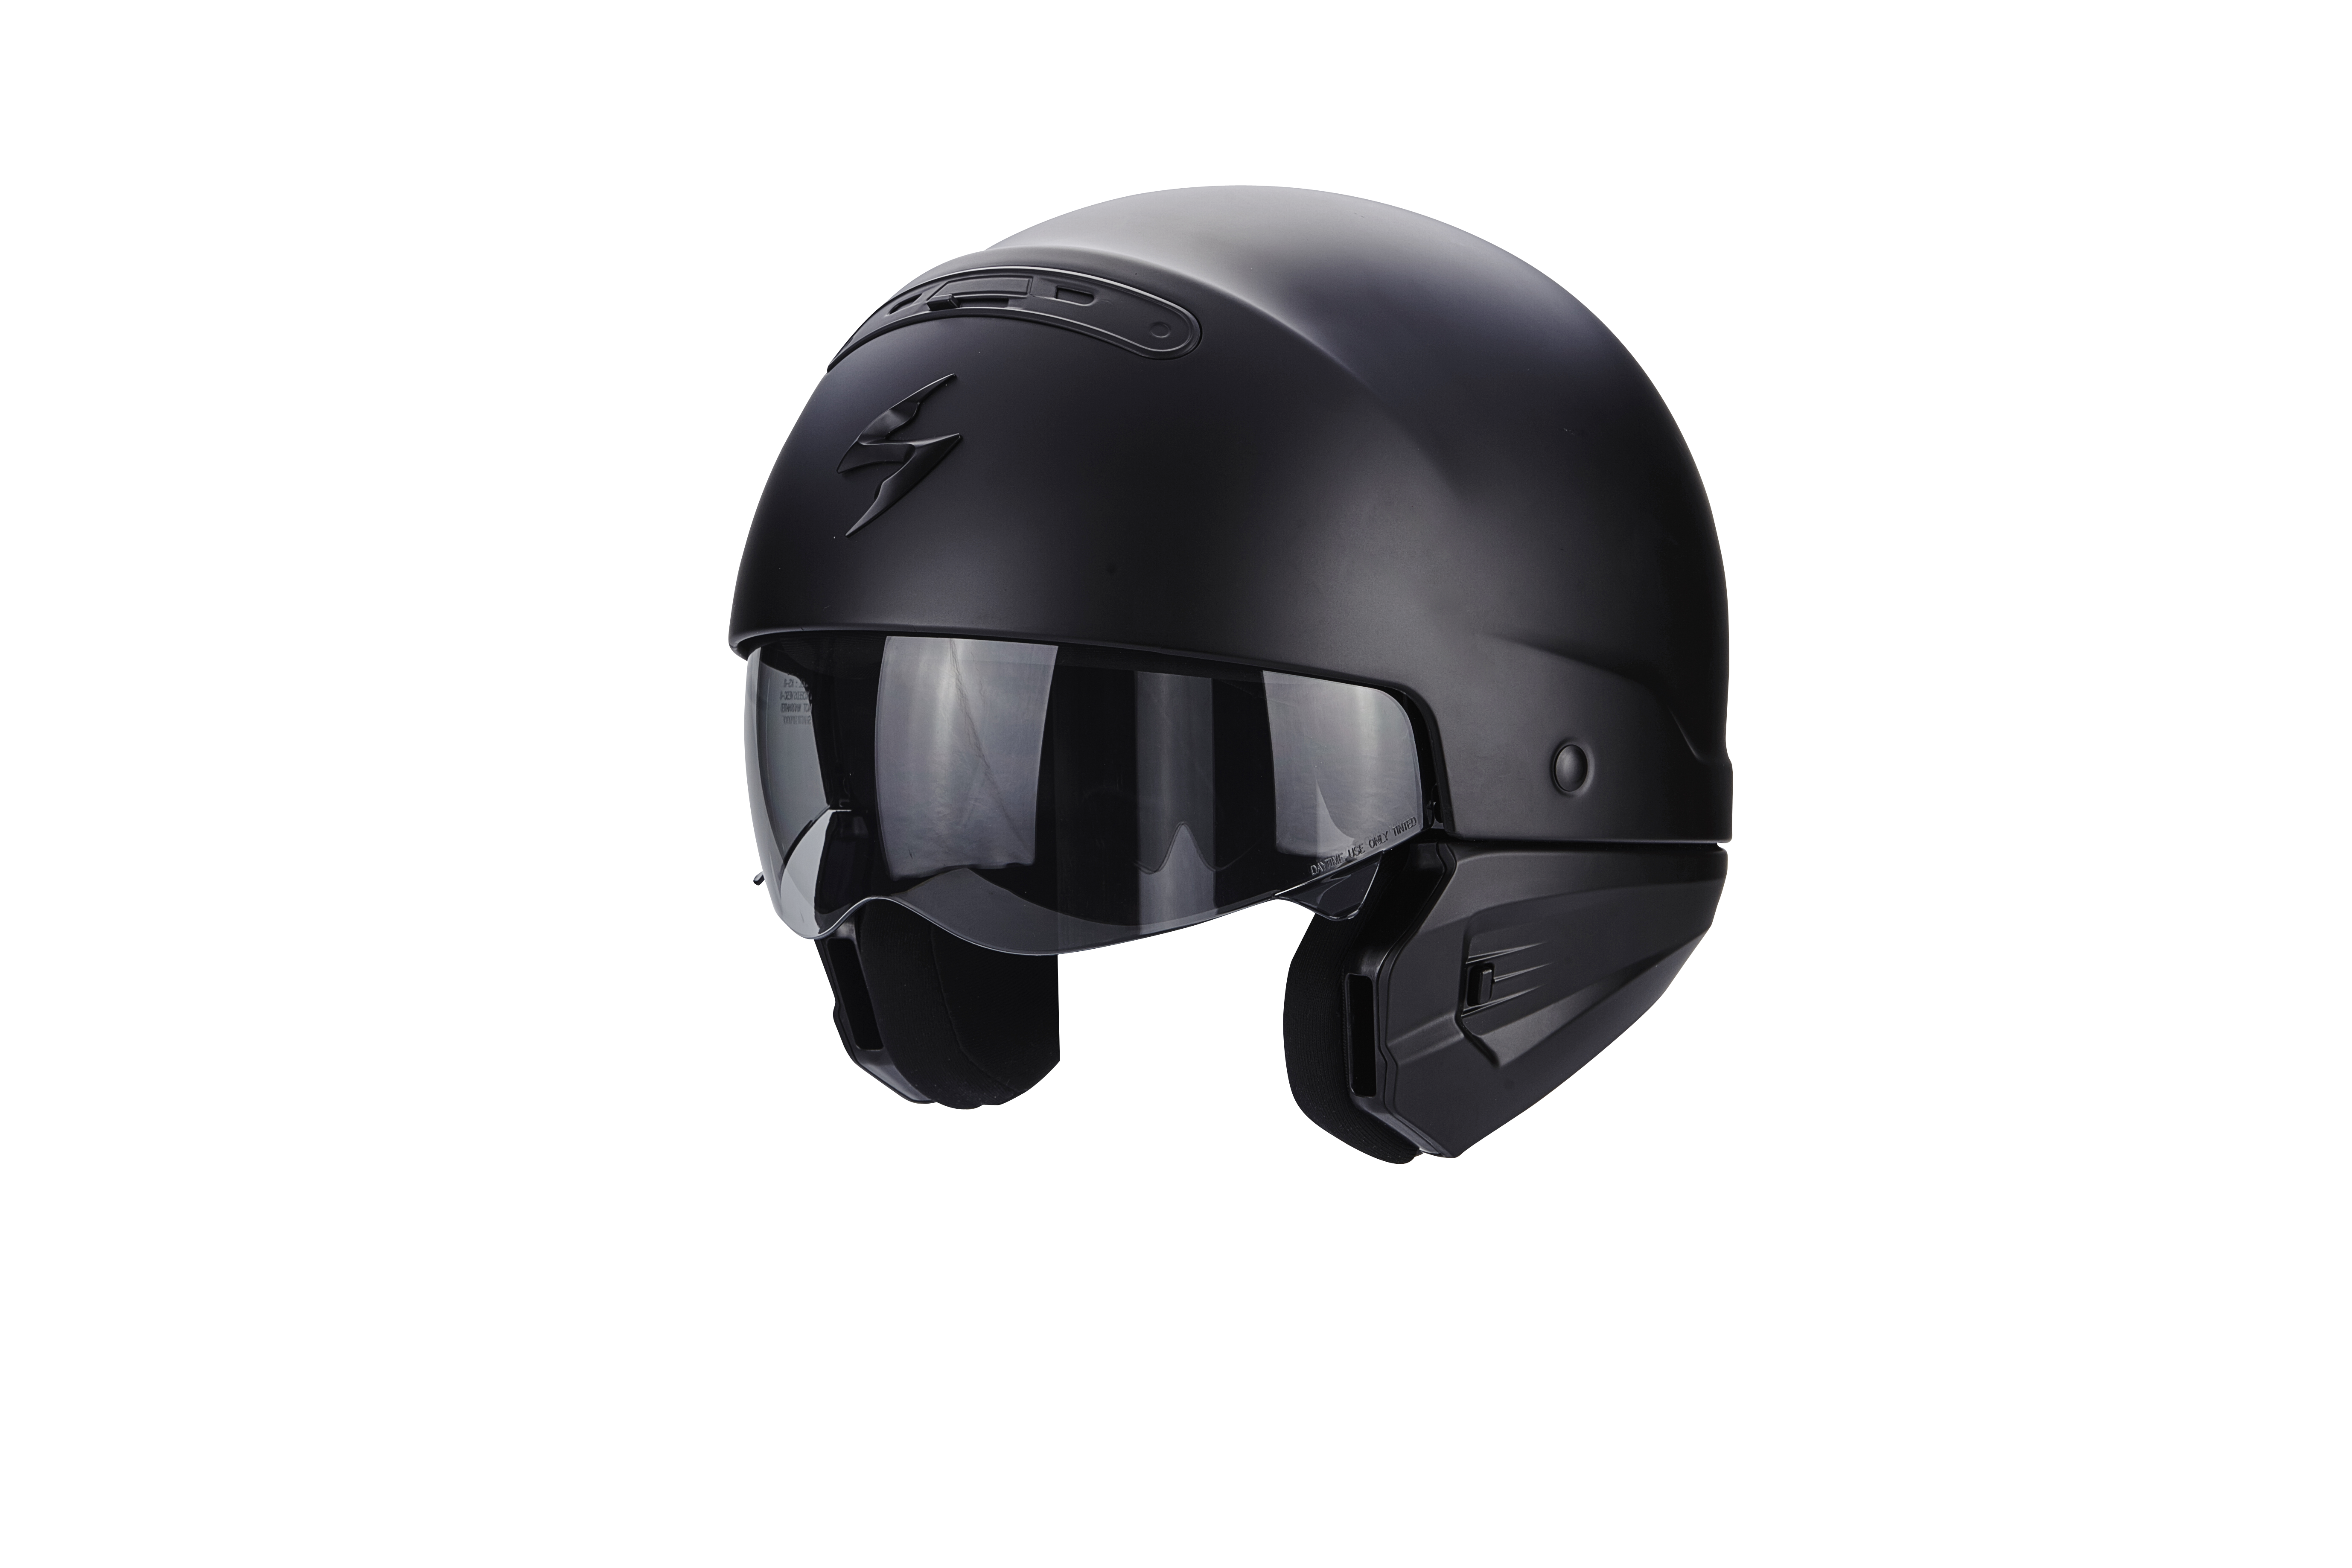 casque moto transformable le casque scorpion exo combat. Black Bedroom Furniture Sets. Home Design Ideas